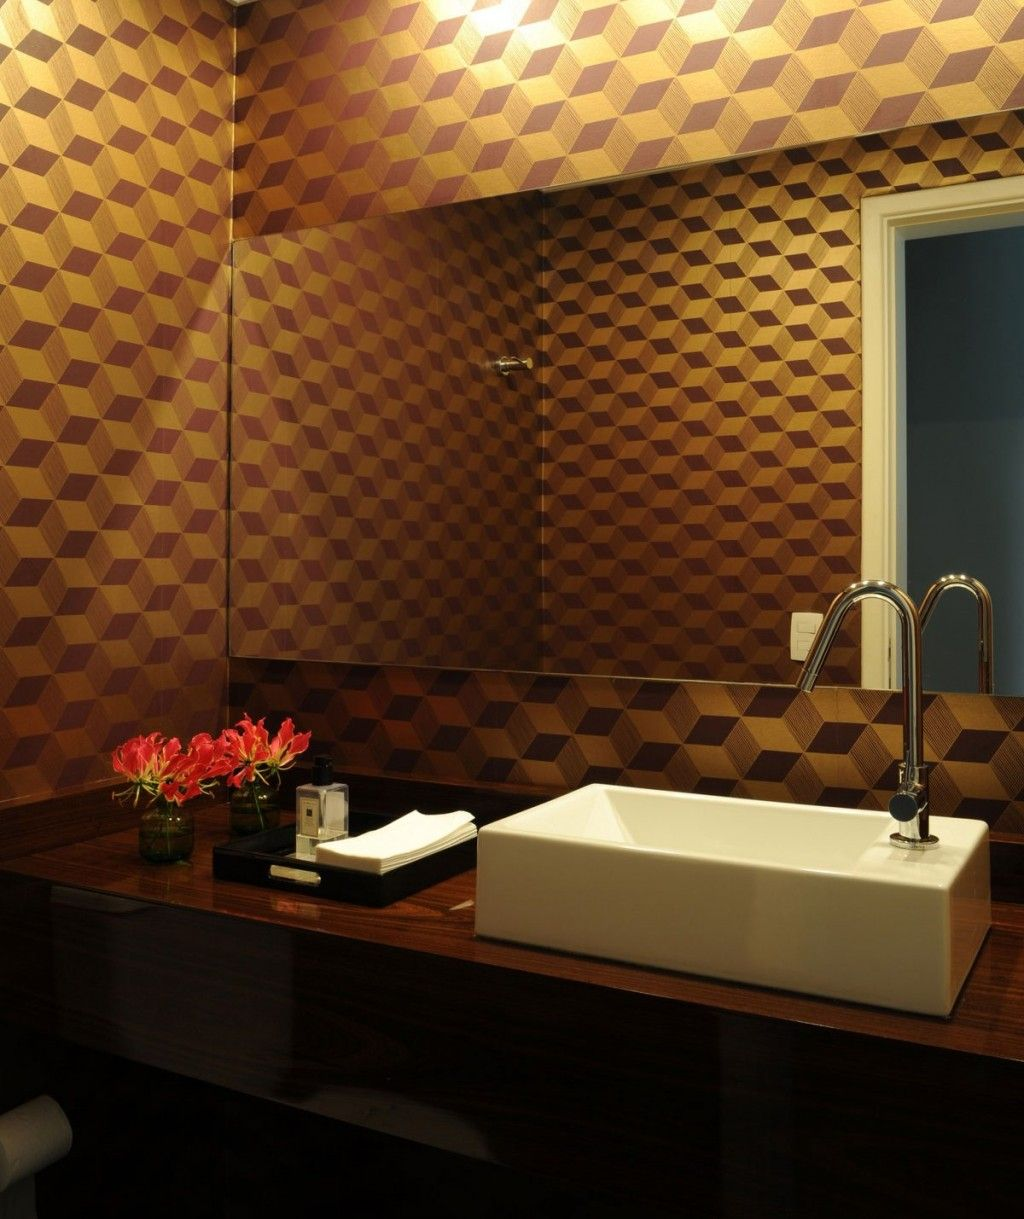 Cube pattern wall accent and laminate wooden floating vanity also frameless mirror design ideas contemporary sao paulo residence with gray interiors